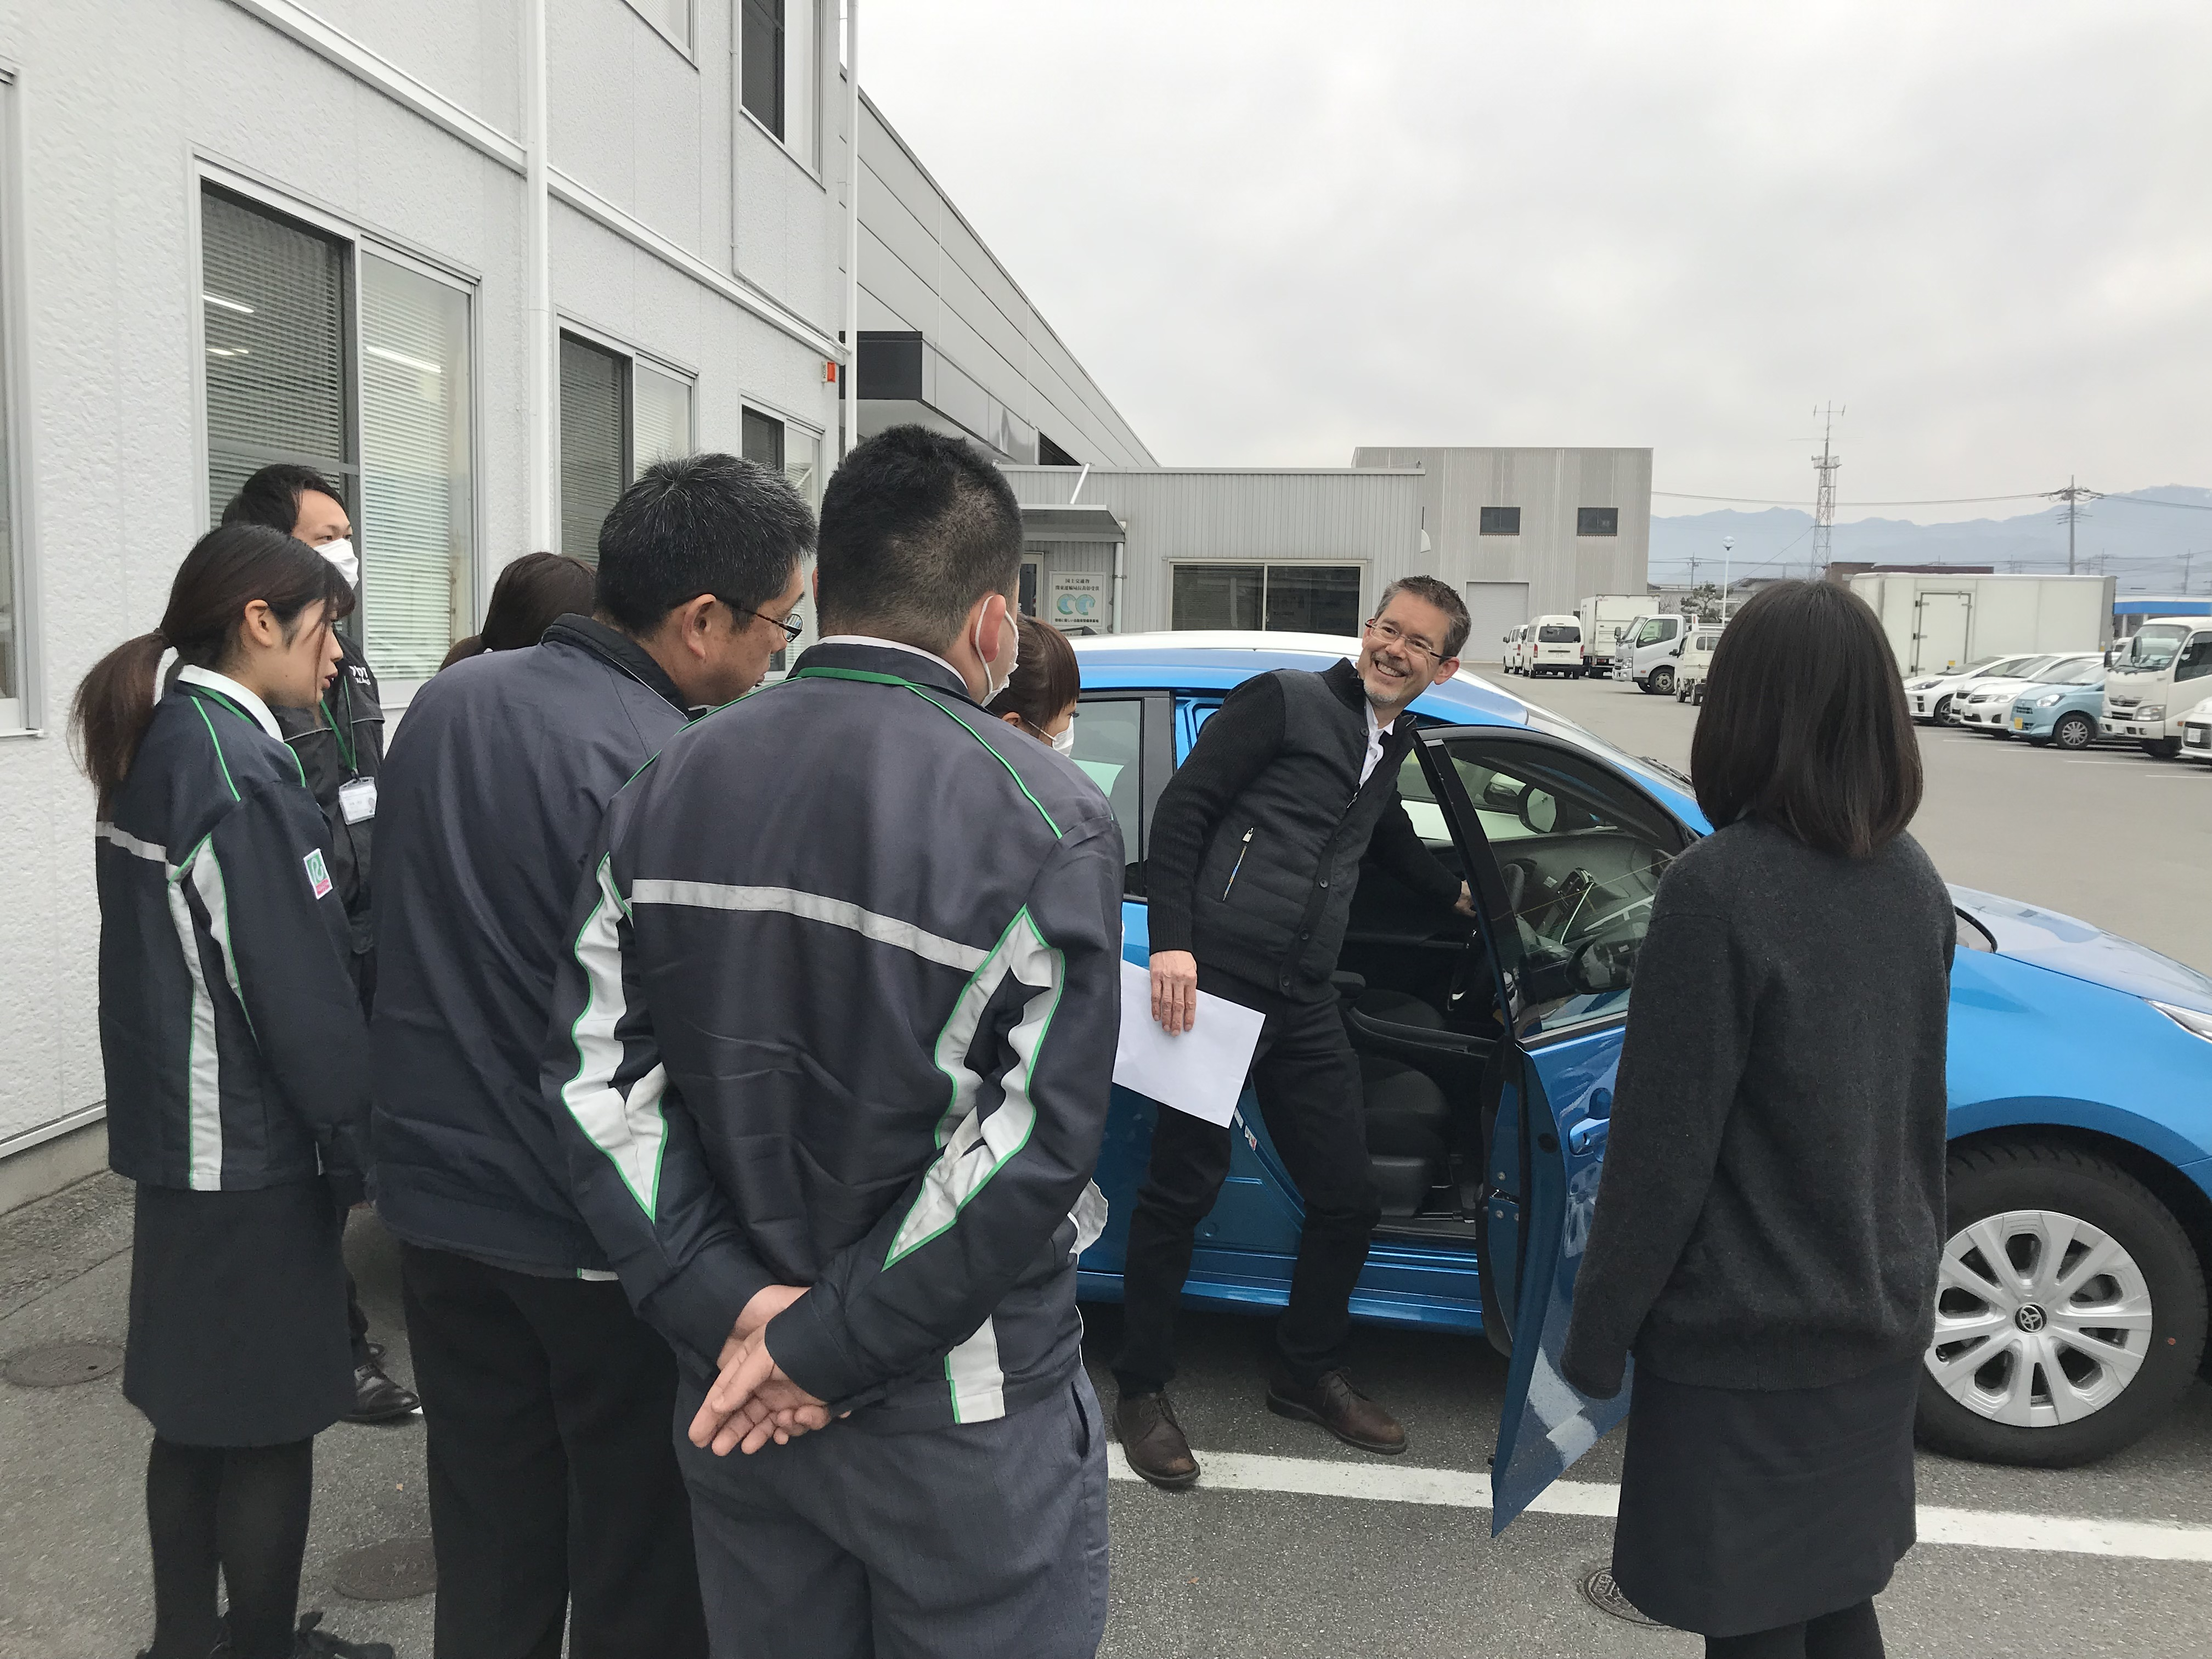 Toyota-Rent-A-Car is just one of the many companies I support with hospitality English training.